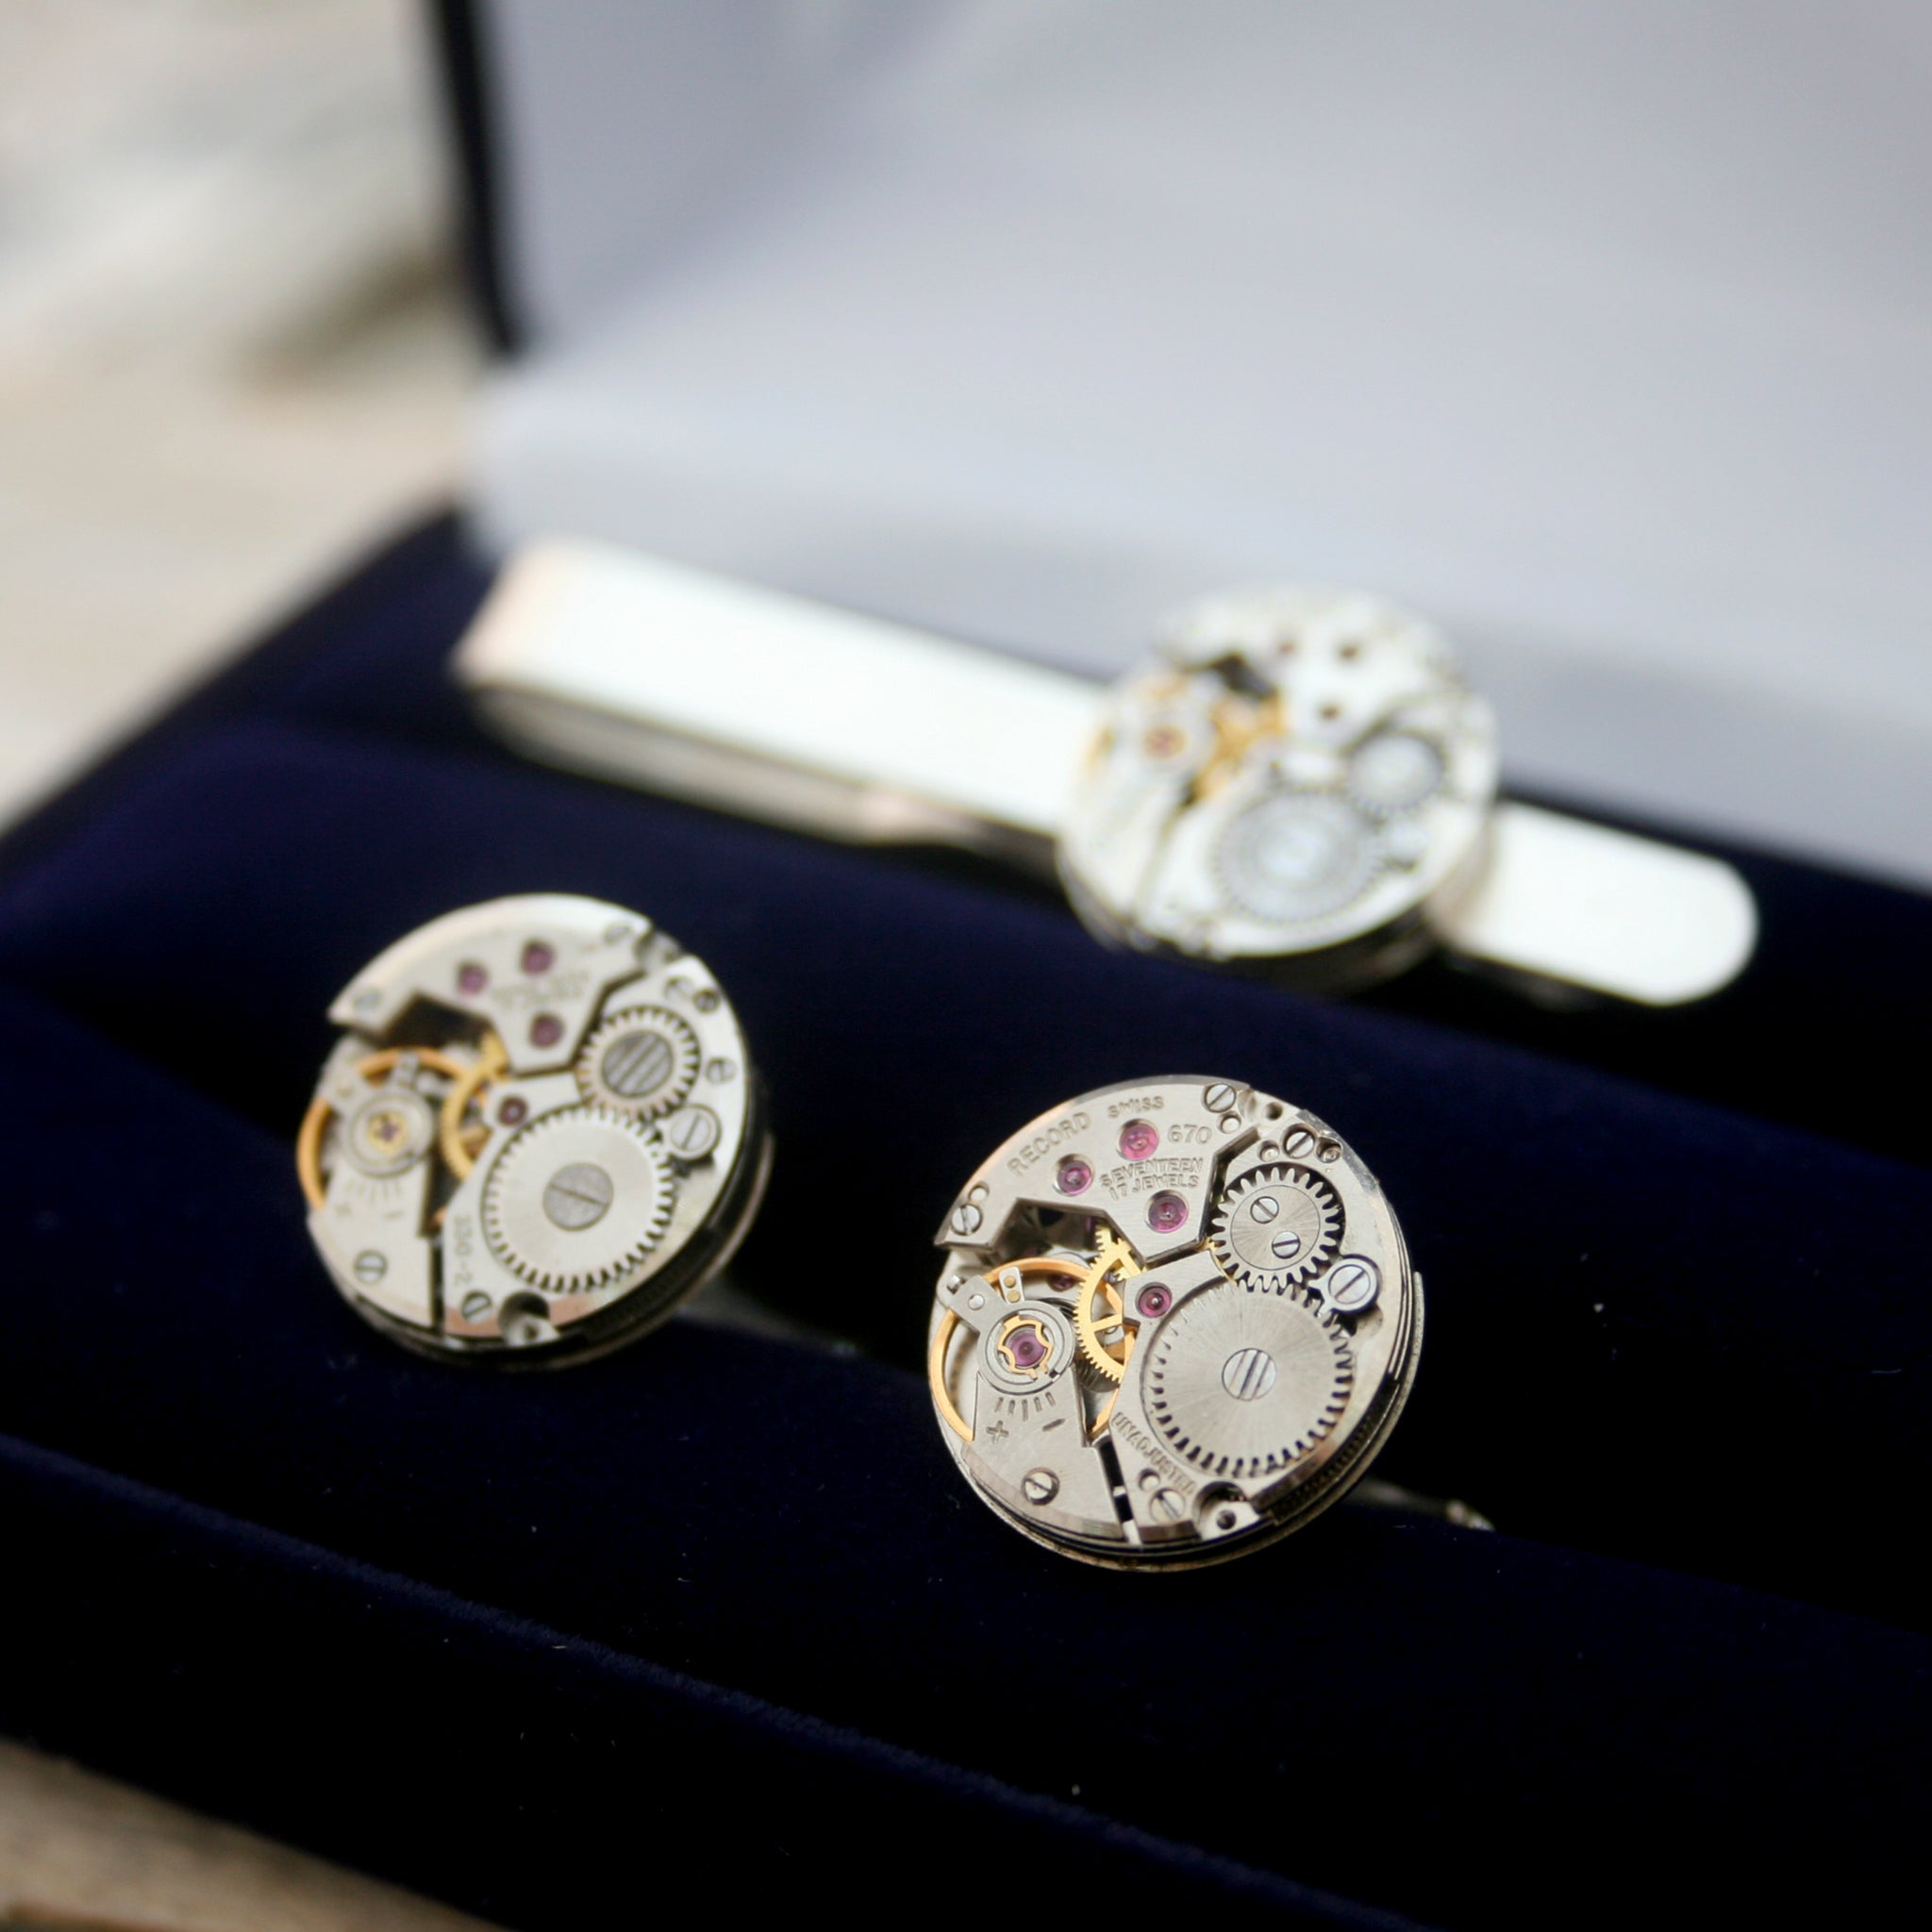 Steampunk Sterling Tie Clip and Cufflinks Set